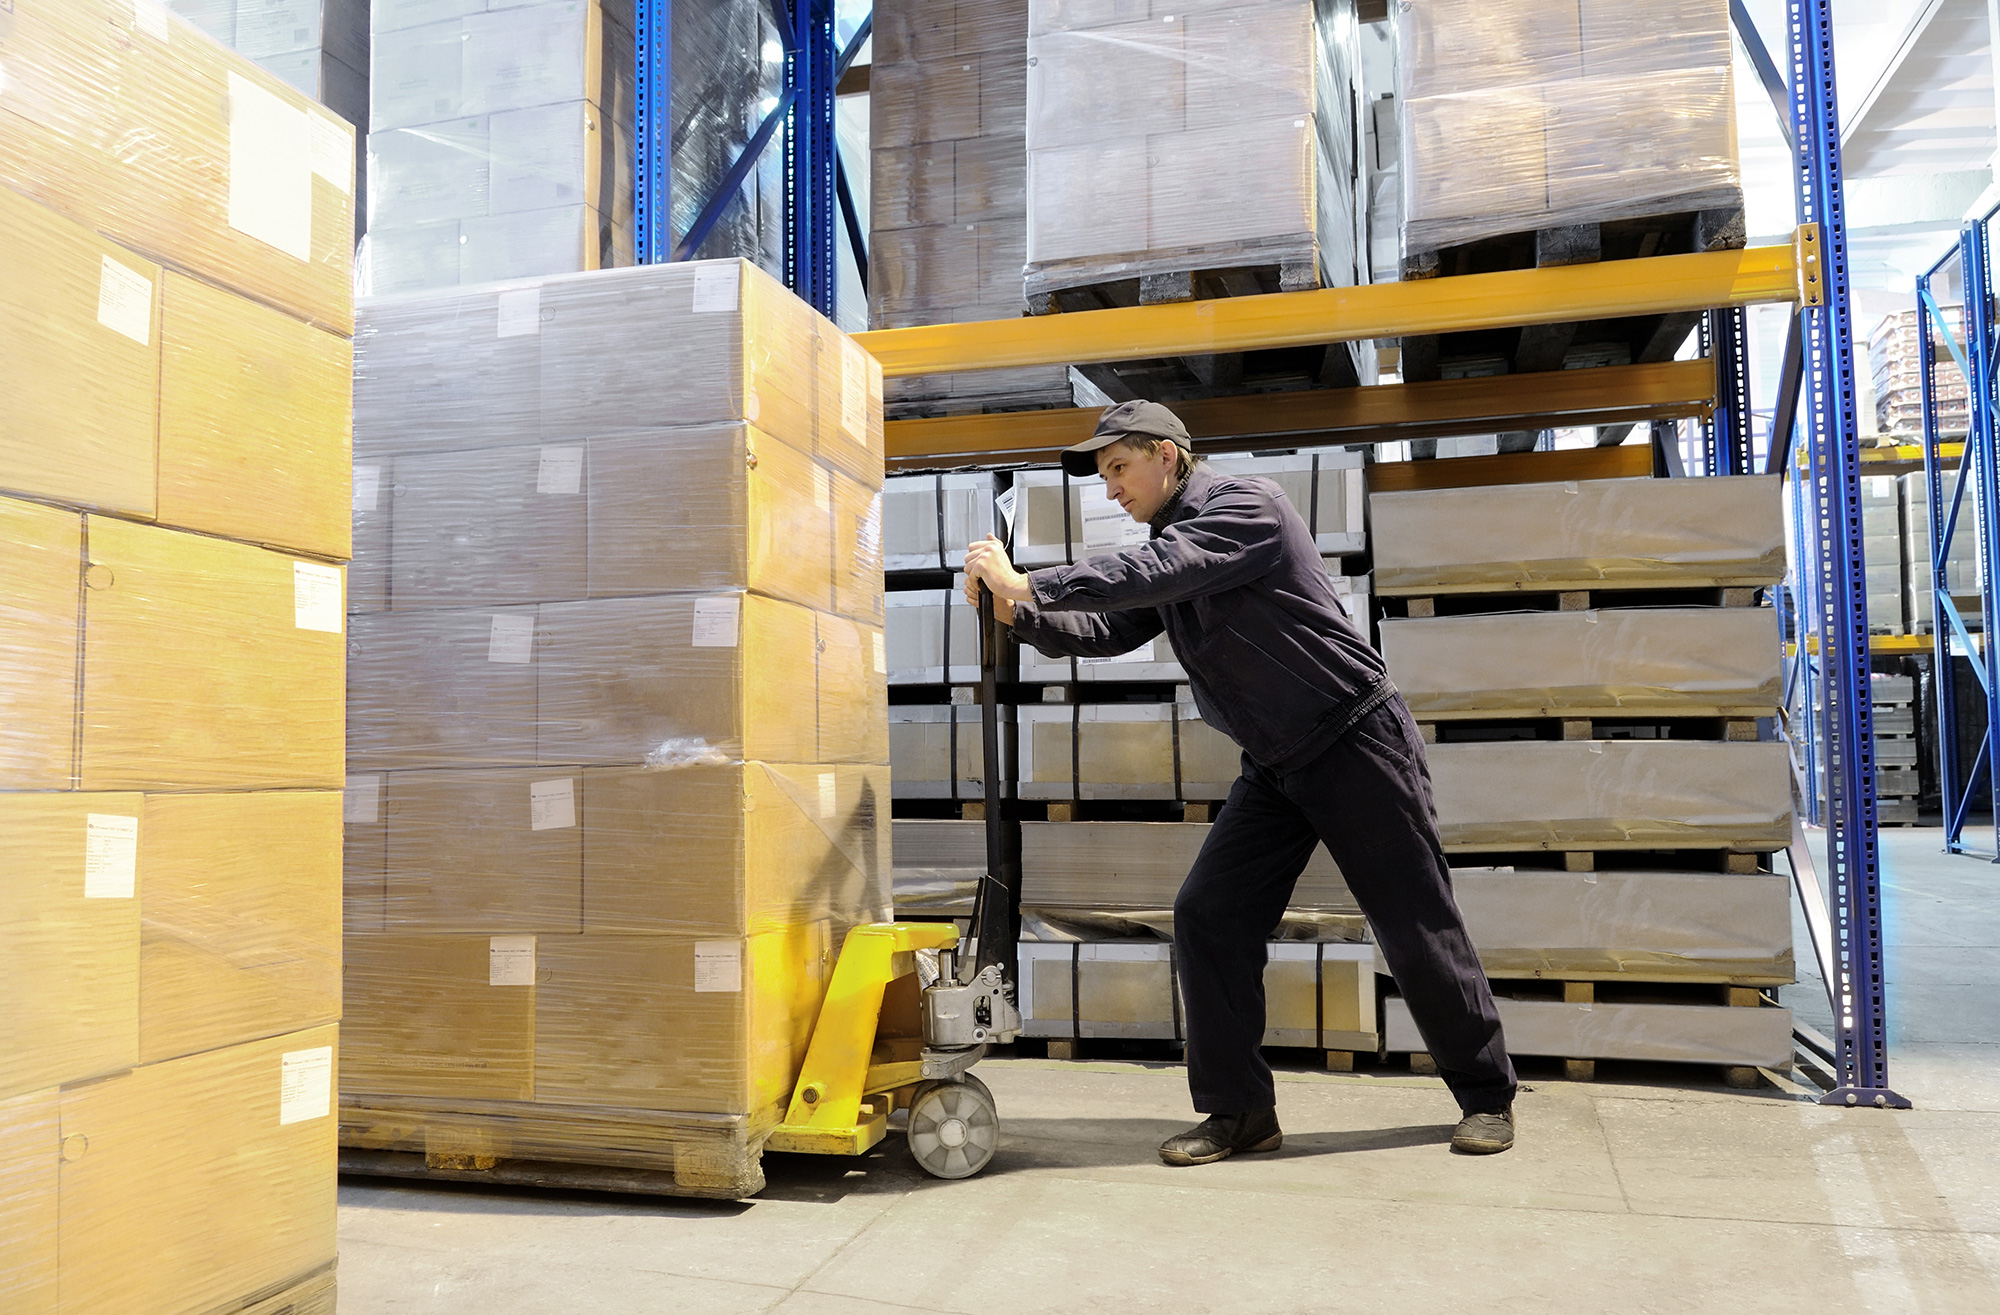 Provision of Warehouse Staff Services(1 Staff)